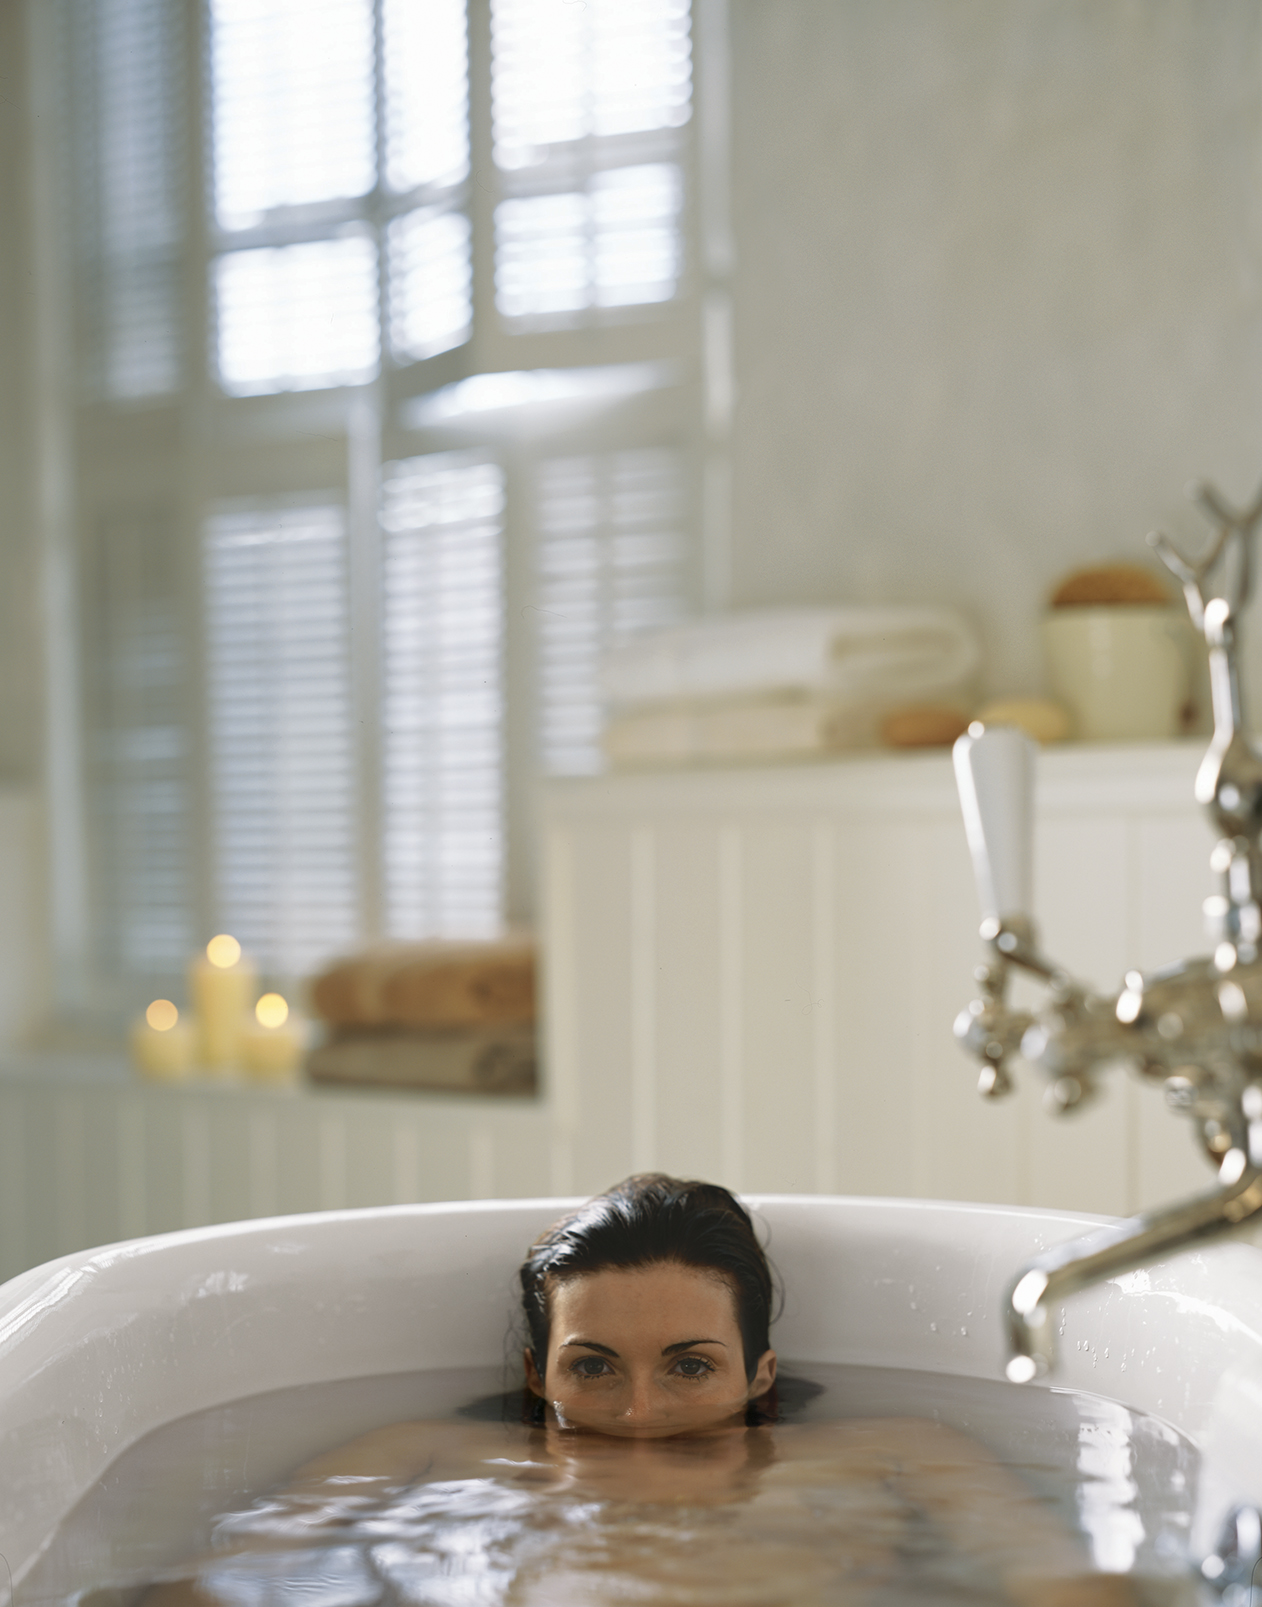 Woman in a bathtub with her head half submerged in water